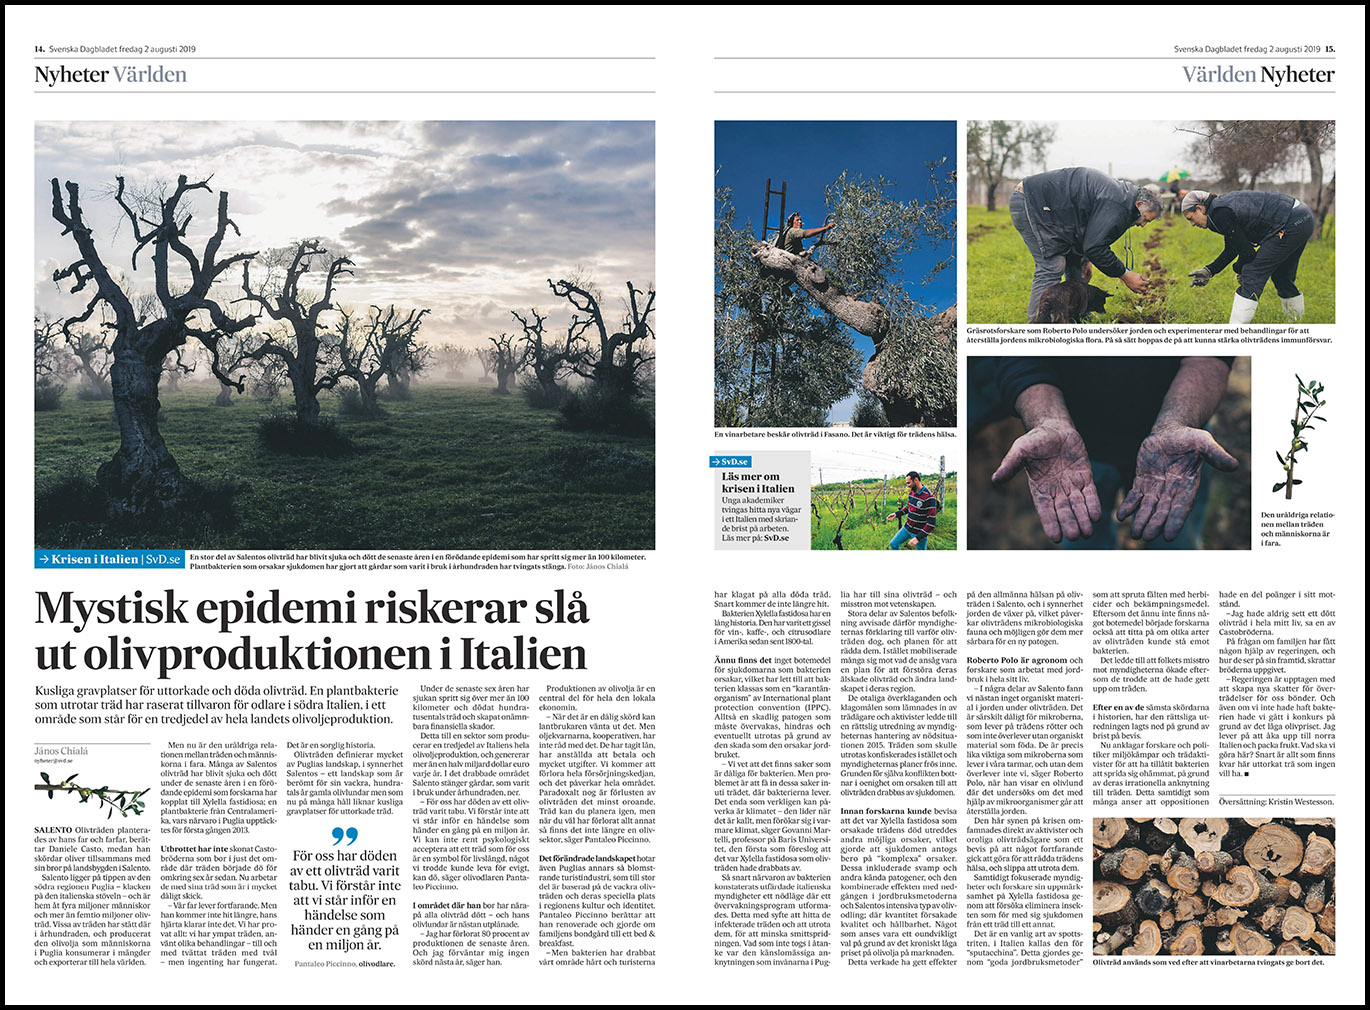 Svenska Dagbladet: The olive trees of Puglia in the time of Xylella. (July 2019) link to story